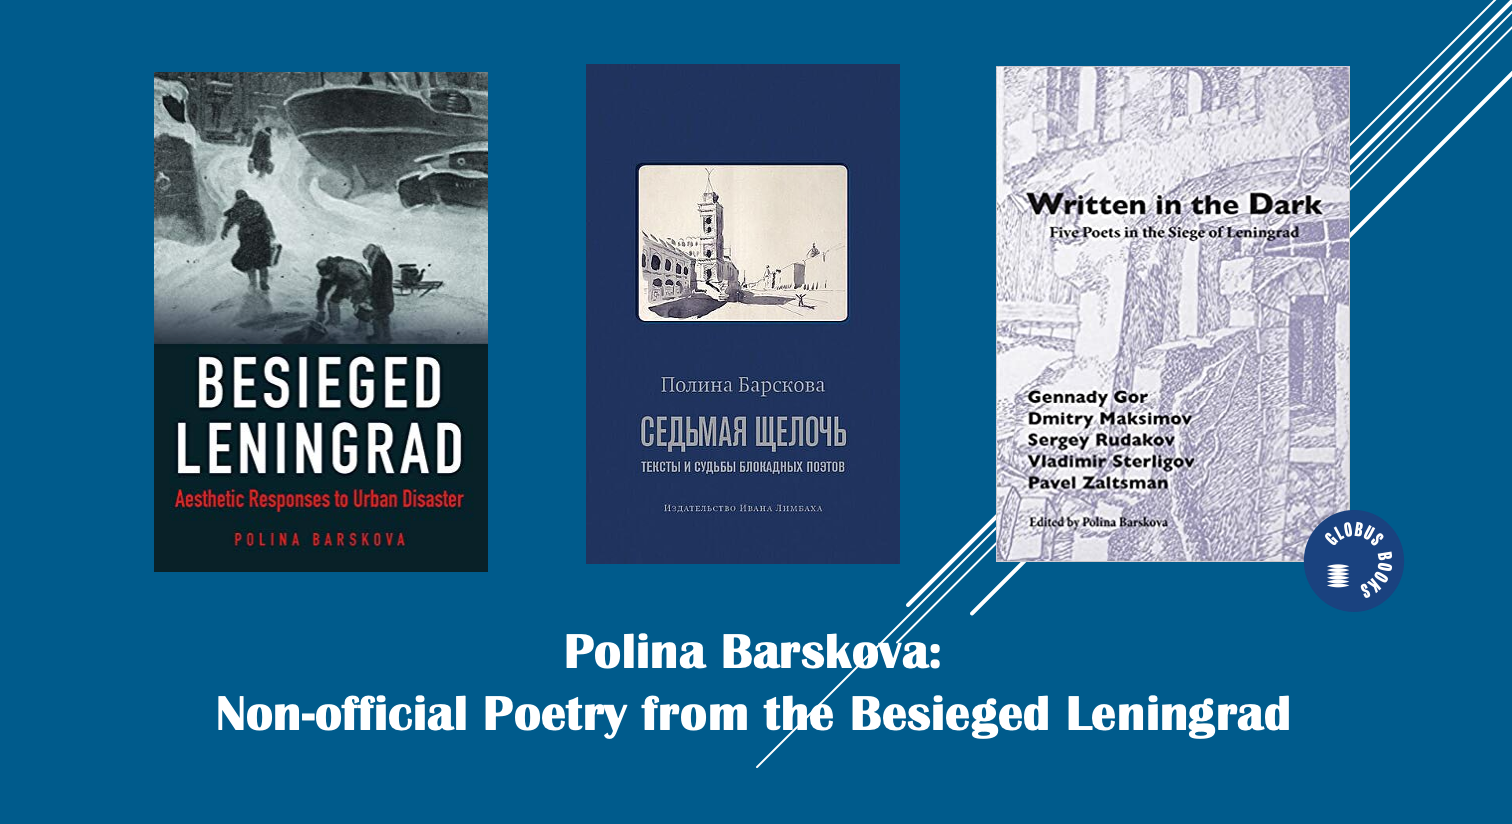 Polina Barskova: Non-official Poetry from the Besieged Leningrad. New Findings and Reading